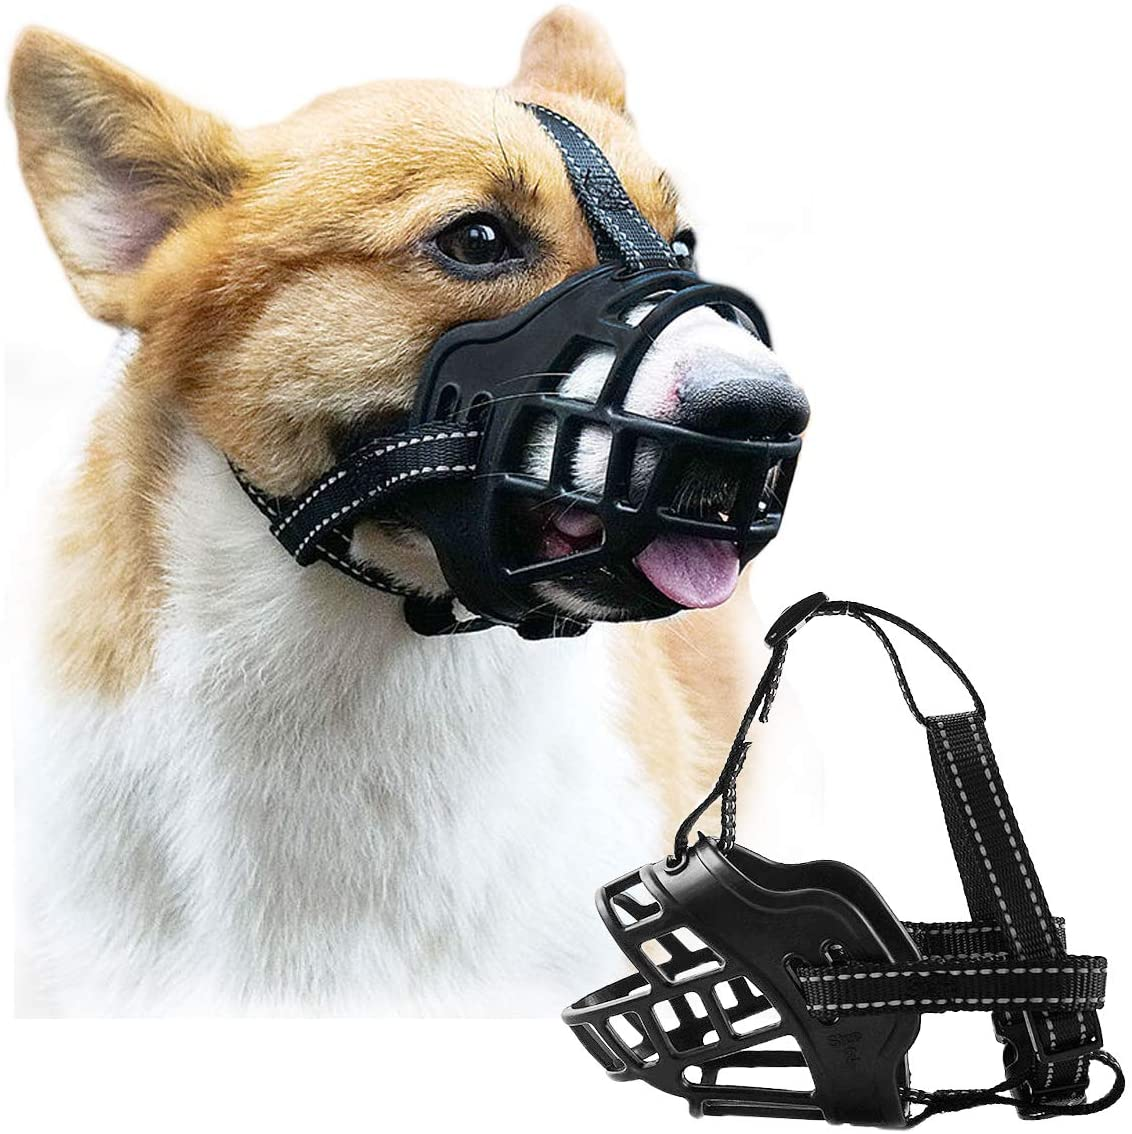 Mayerzon Dog Muzzle, Breathable Basket Silicone Dog Muzzle for Safety Walking Small Medium Large Dogs, Prevent Barking Biting and Chewing, Allow Drinking Panting